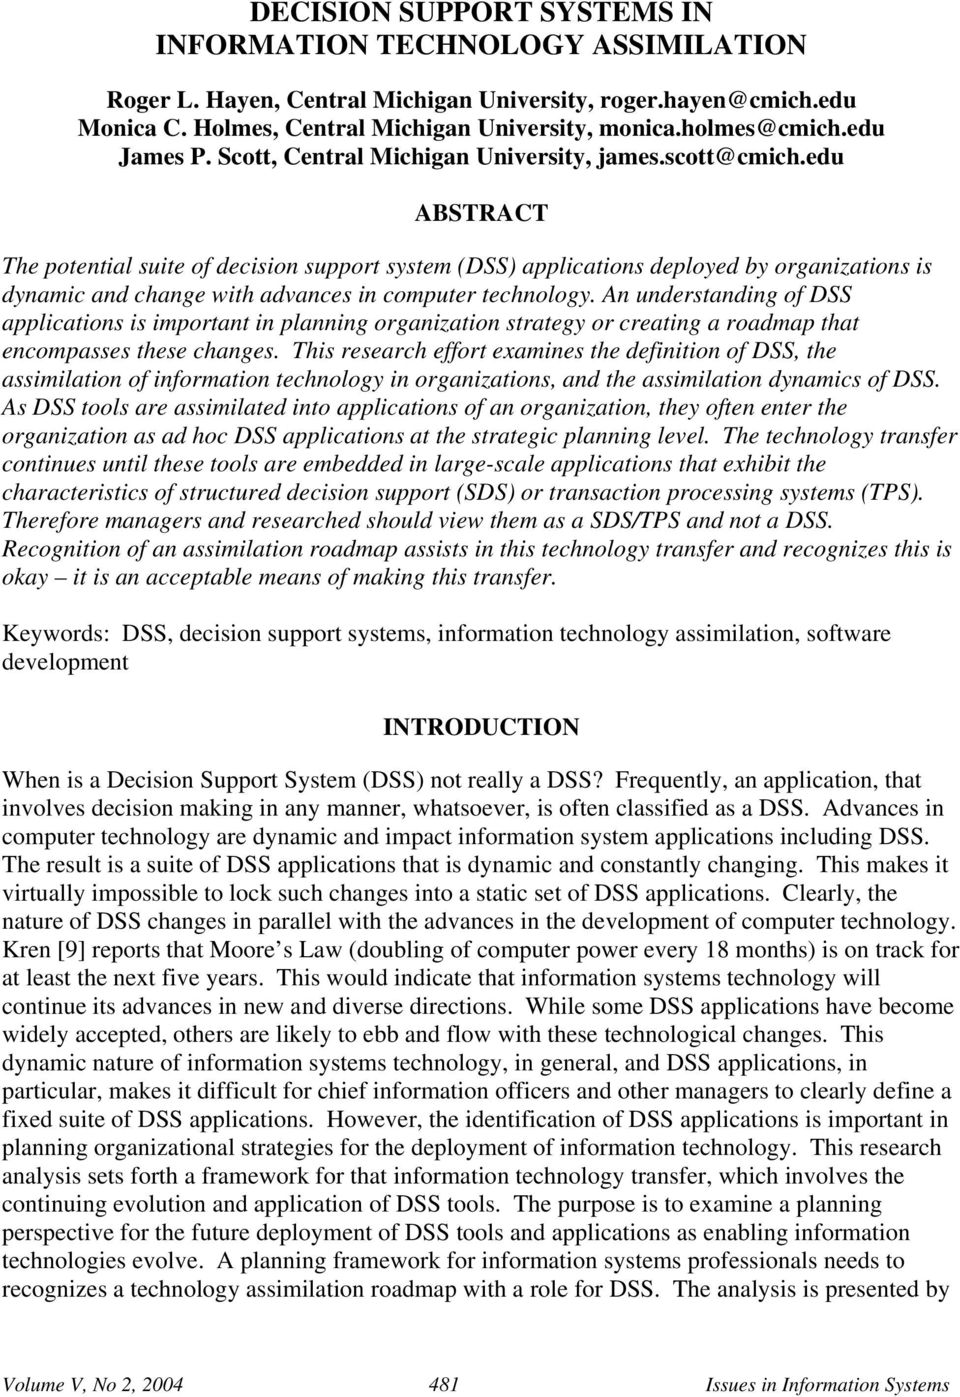 edu ABSTRACT The potential suite of decision support system (DSS) applications deployed by organizations is dynamic and change with advances in computer technology.